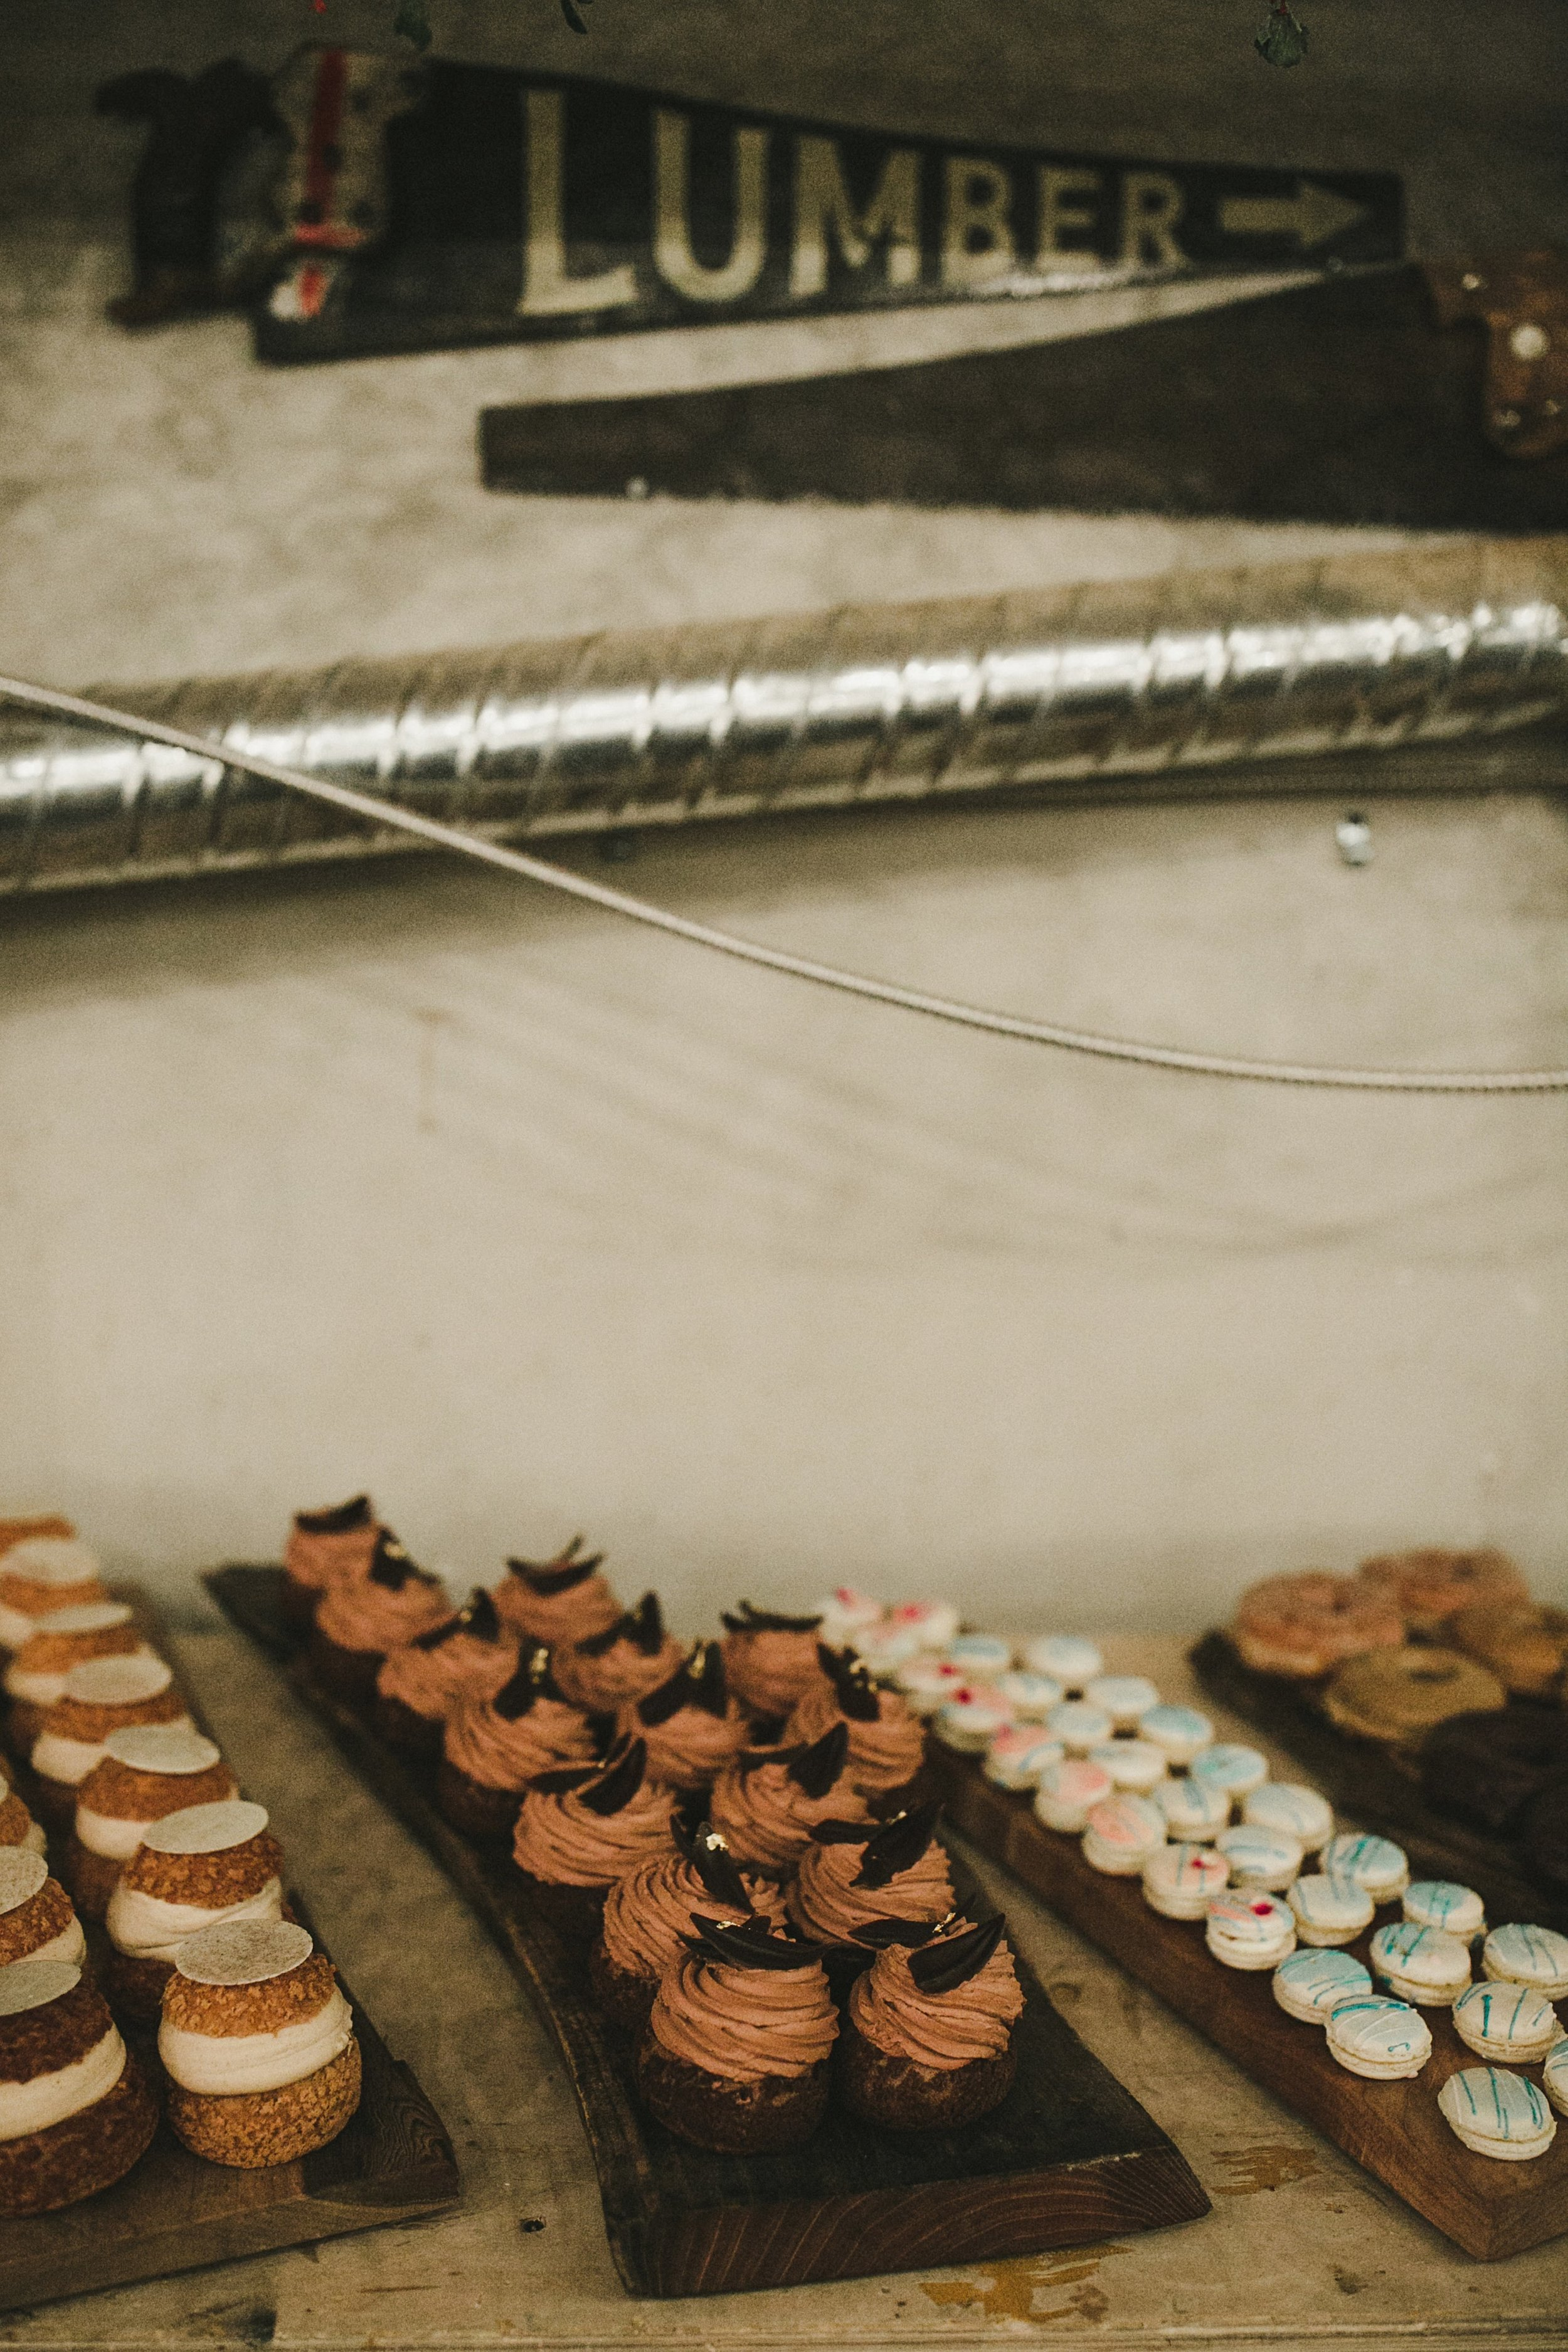 HOWE ABOUT FOREVA - Vancouver urban woodshop wedding by Shari + Mike photographers - Beta 5 cream puffs + Livia Sweets macaroons